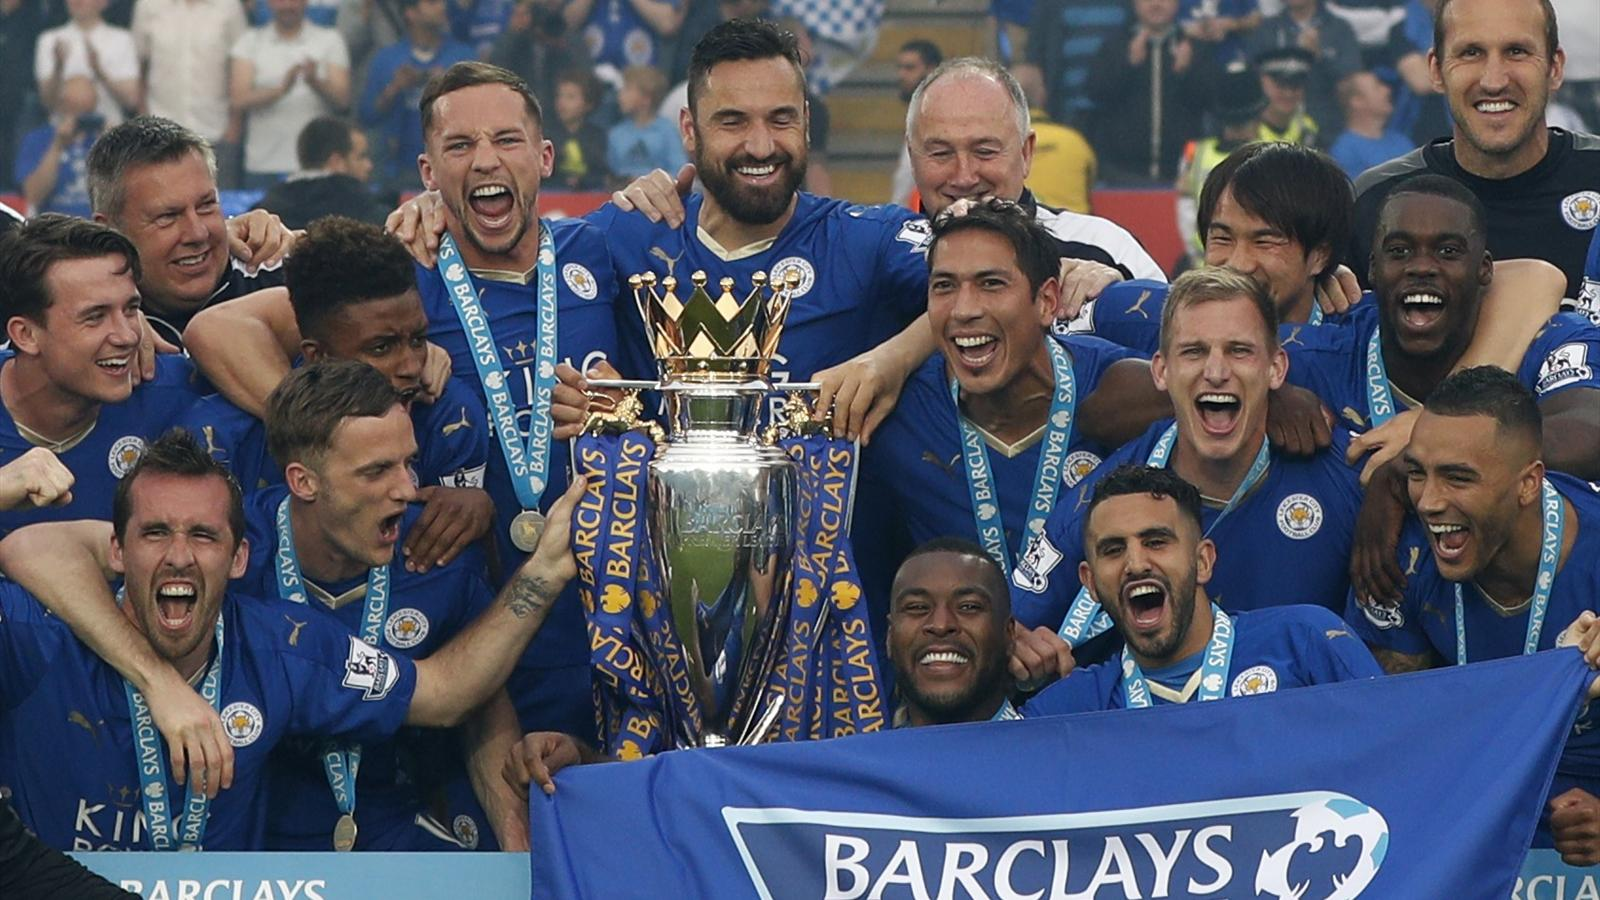 All the reaction to Leicester City's title win - Premier League 2015-2016 - Football - Eurosport UK